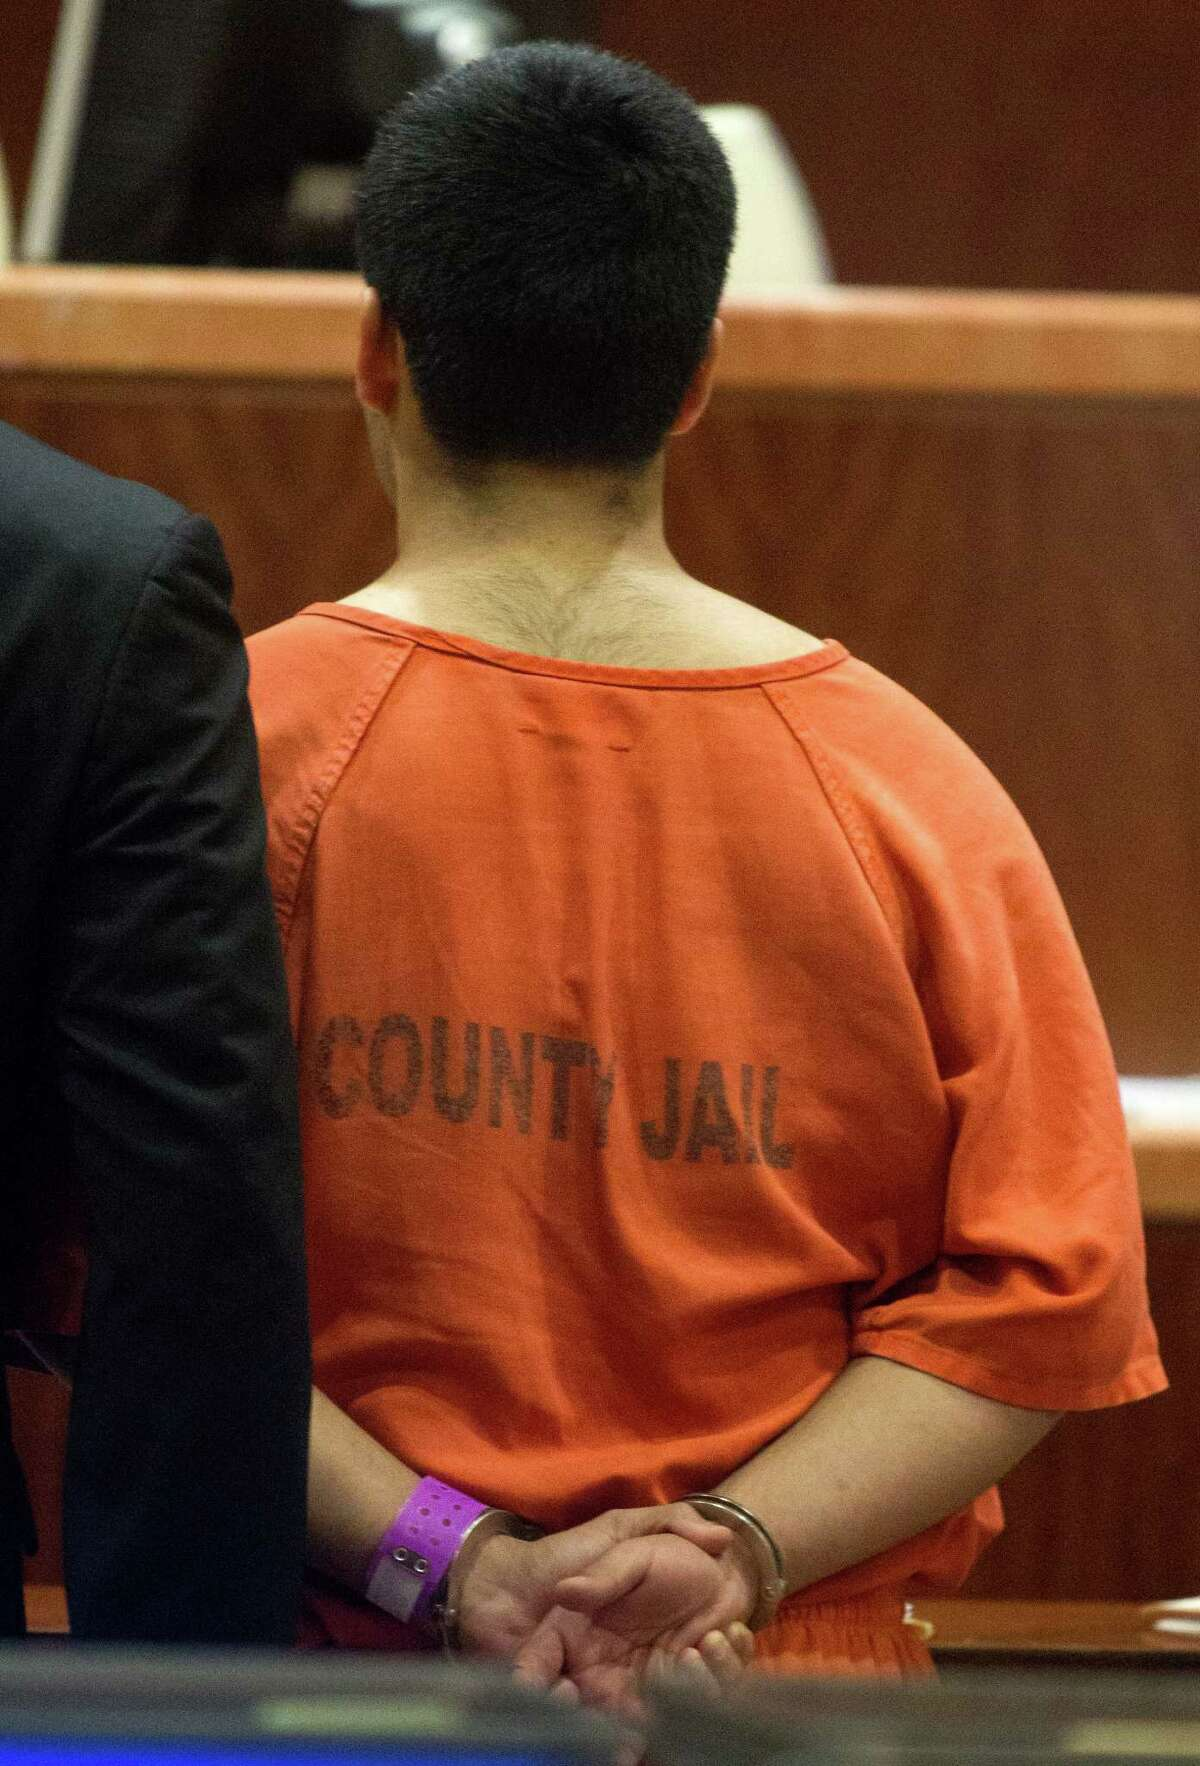 Luis Alonzo Alfaro, 17, appears in the 262nd District Court on Friday, Sept. 6, 2013, in Houston. Alfaro is charged with murder accused of fatally stabbing 17-year-old Joshua Broussard at Spring High School.